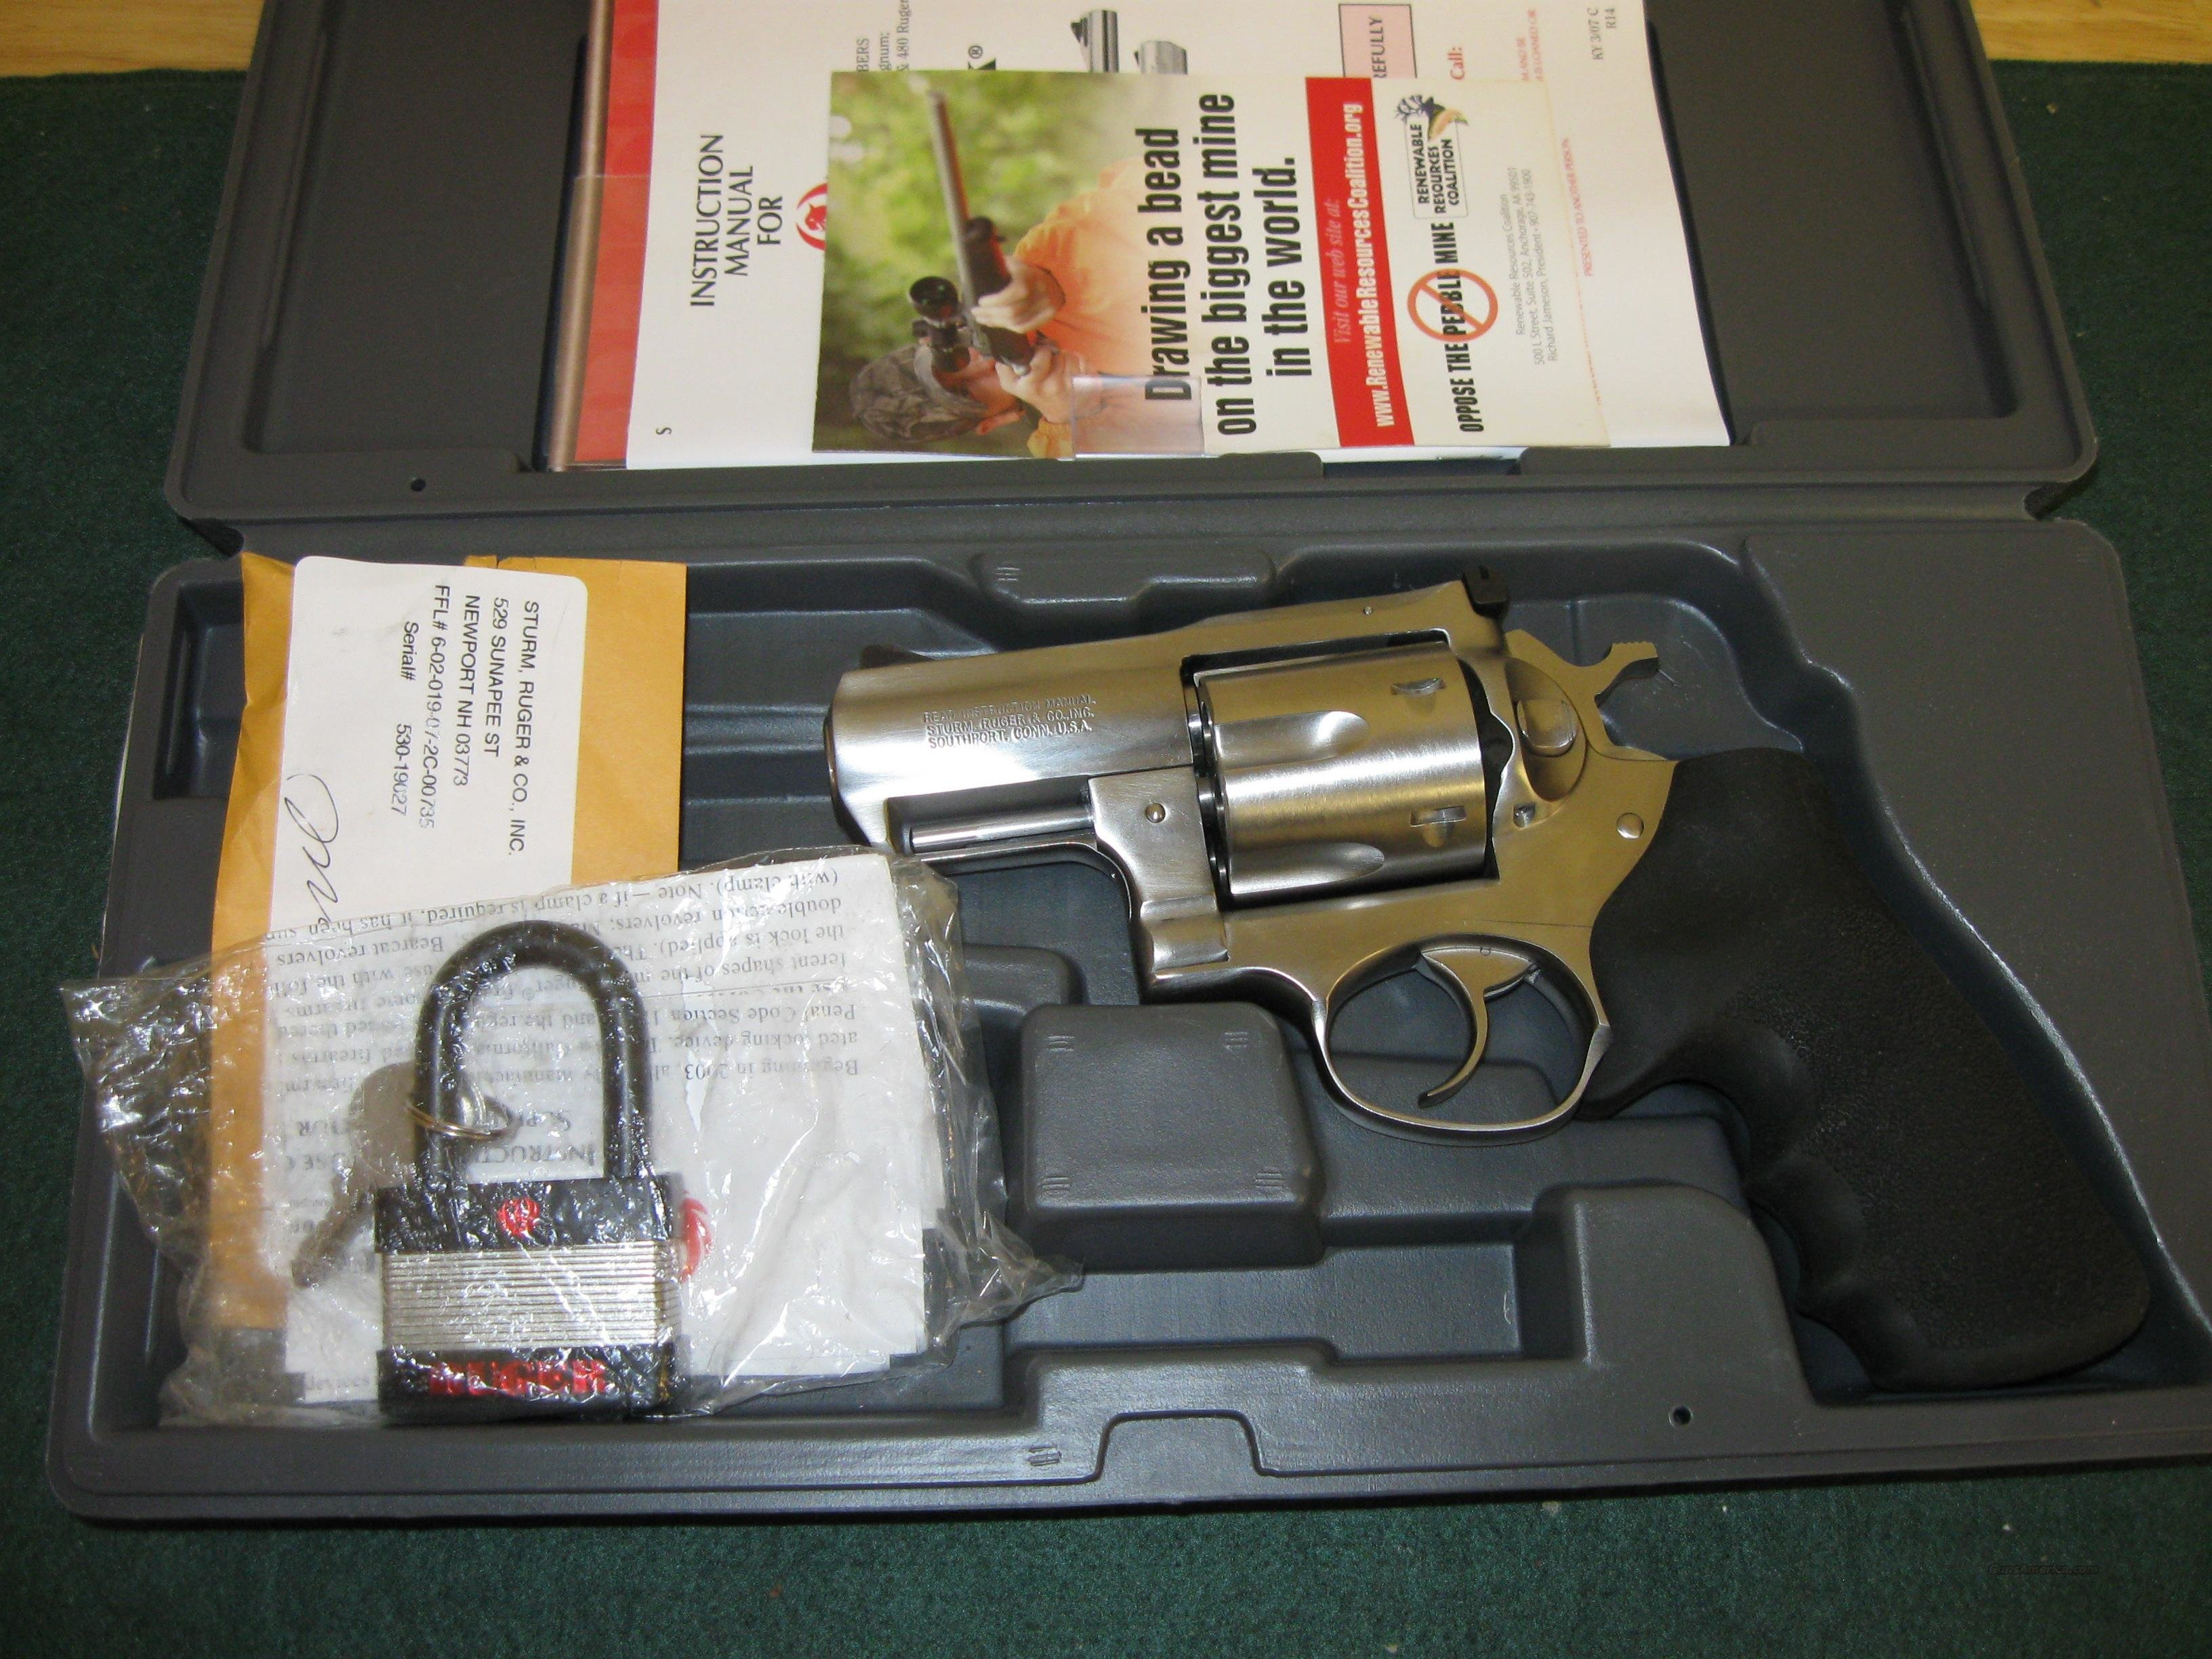 Ruger Super Redhawk Model KSRH2 Alaskan Revolver 5303, 44 Remington Mag, 2 1/2 in, Hogue Tamer Monogrip, Satin Stainless Finish, 6 Rd  Guns > Pistols > Ruger Double Action Revolver > Redhawk Type